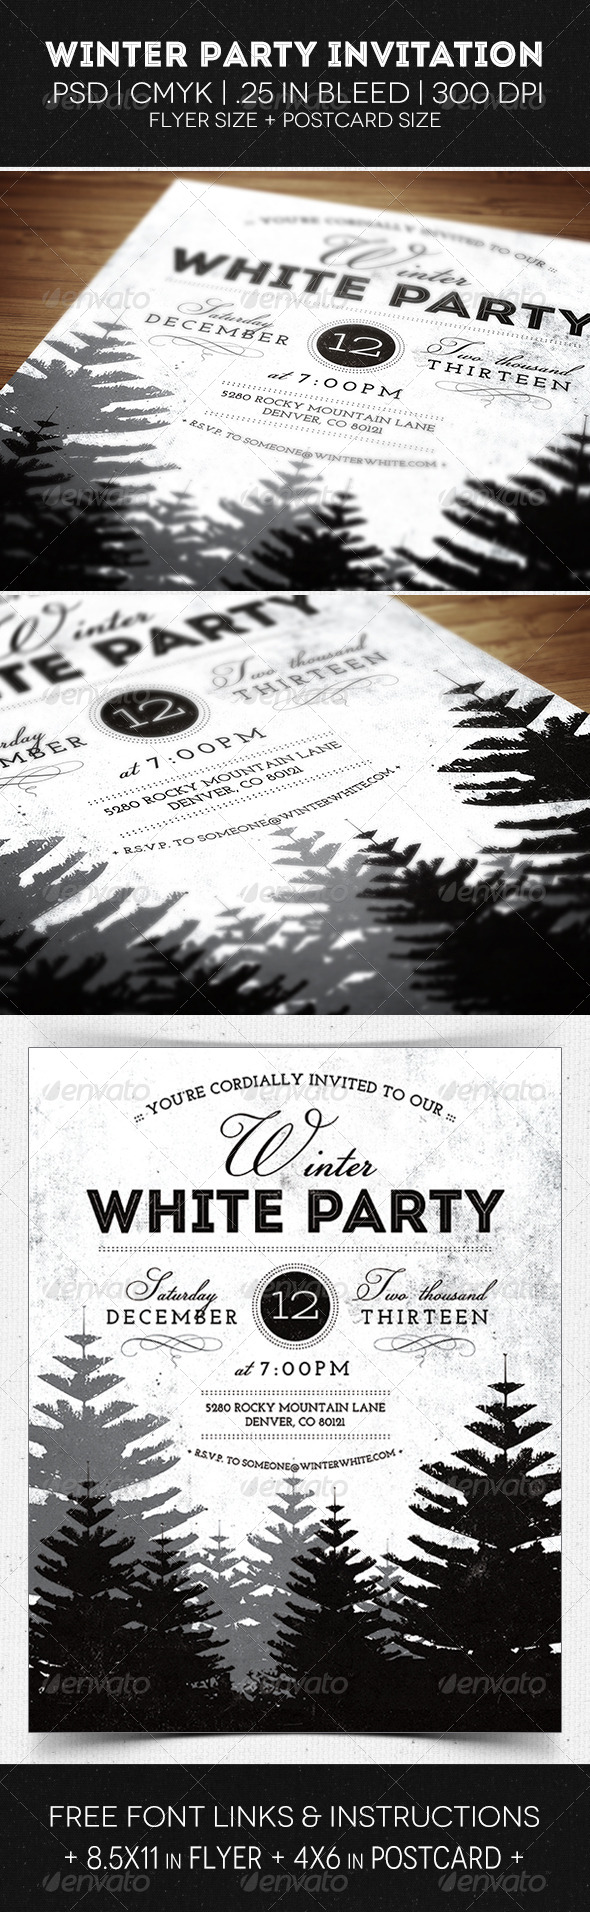 Winter Party Flyer & Invitation - Invitations Cards & Invites